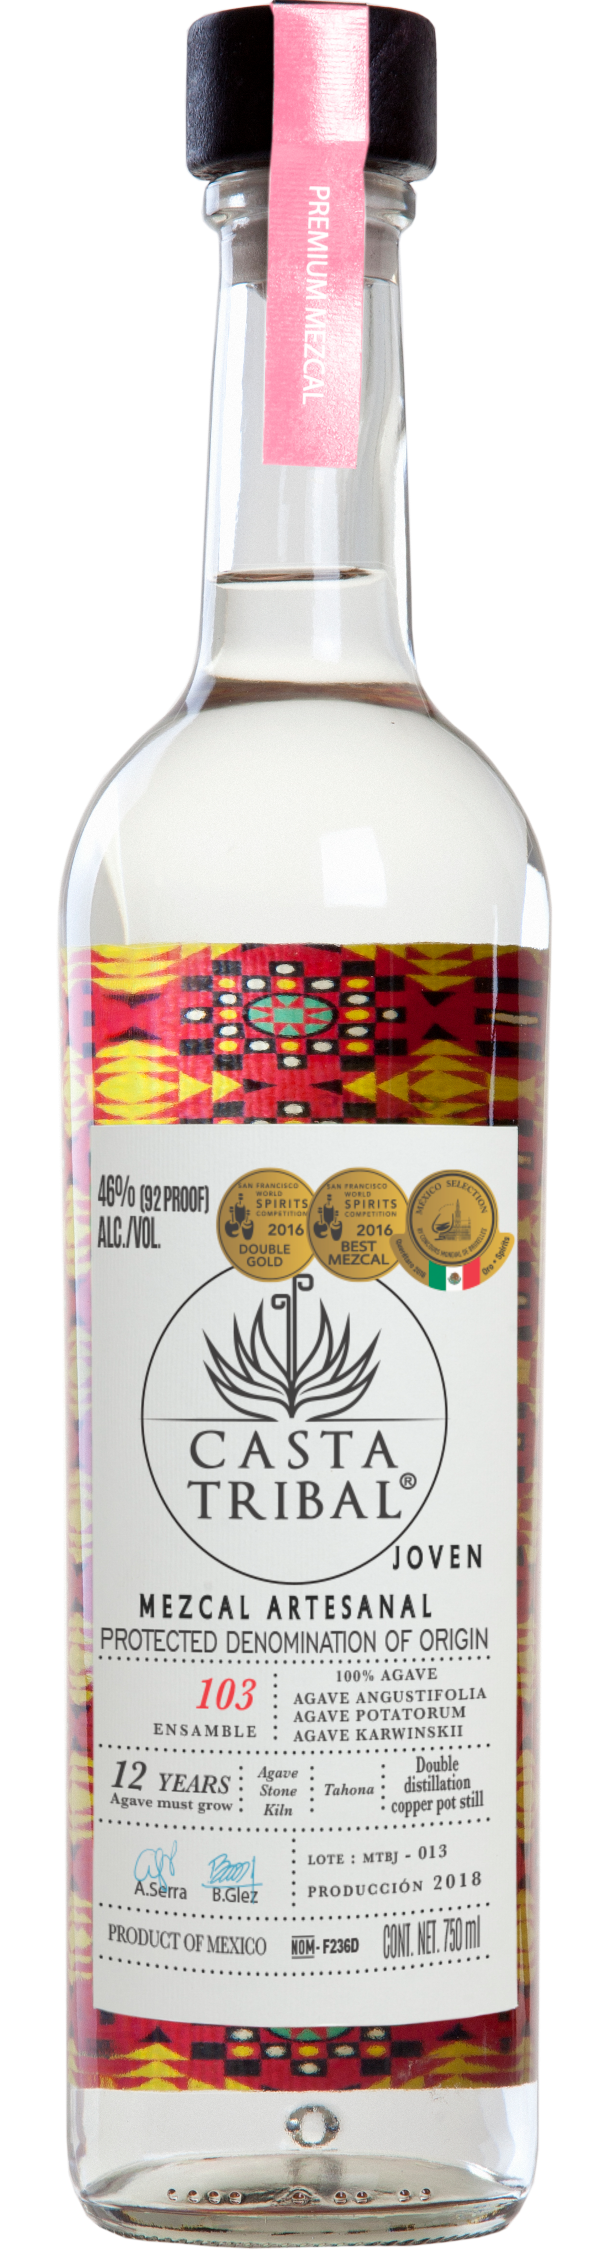 Casta Tribal Ensamble Mezcal 103